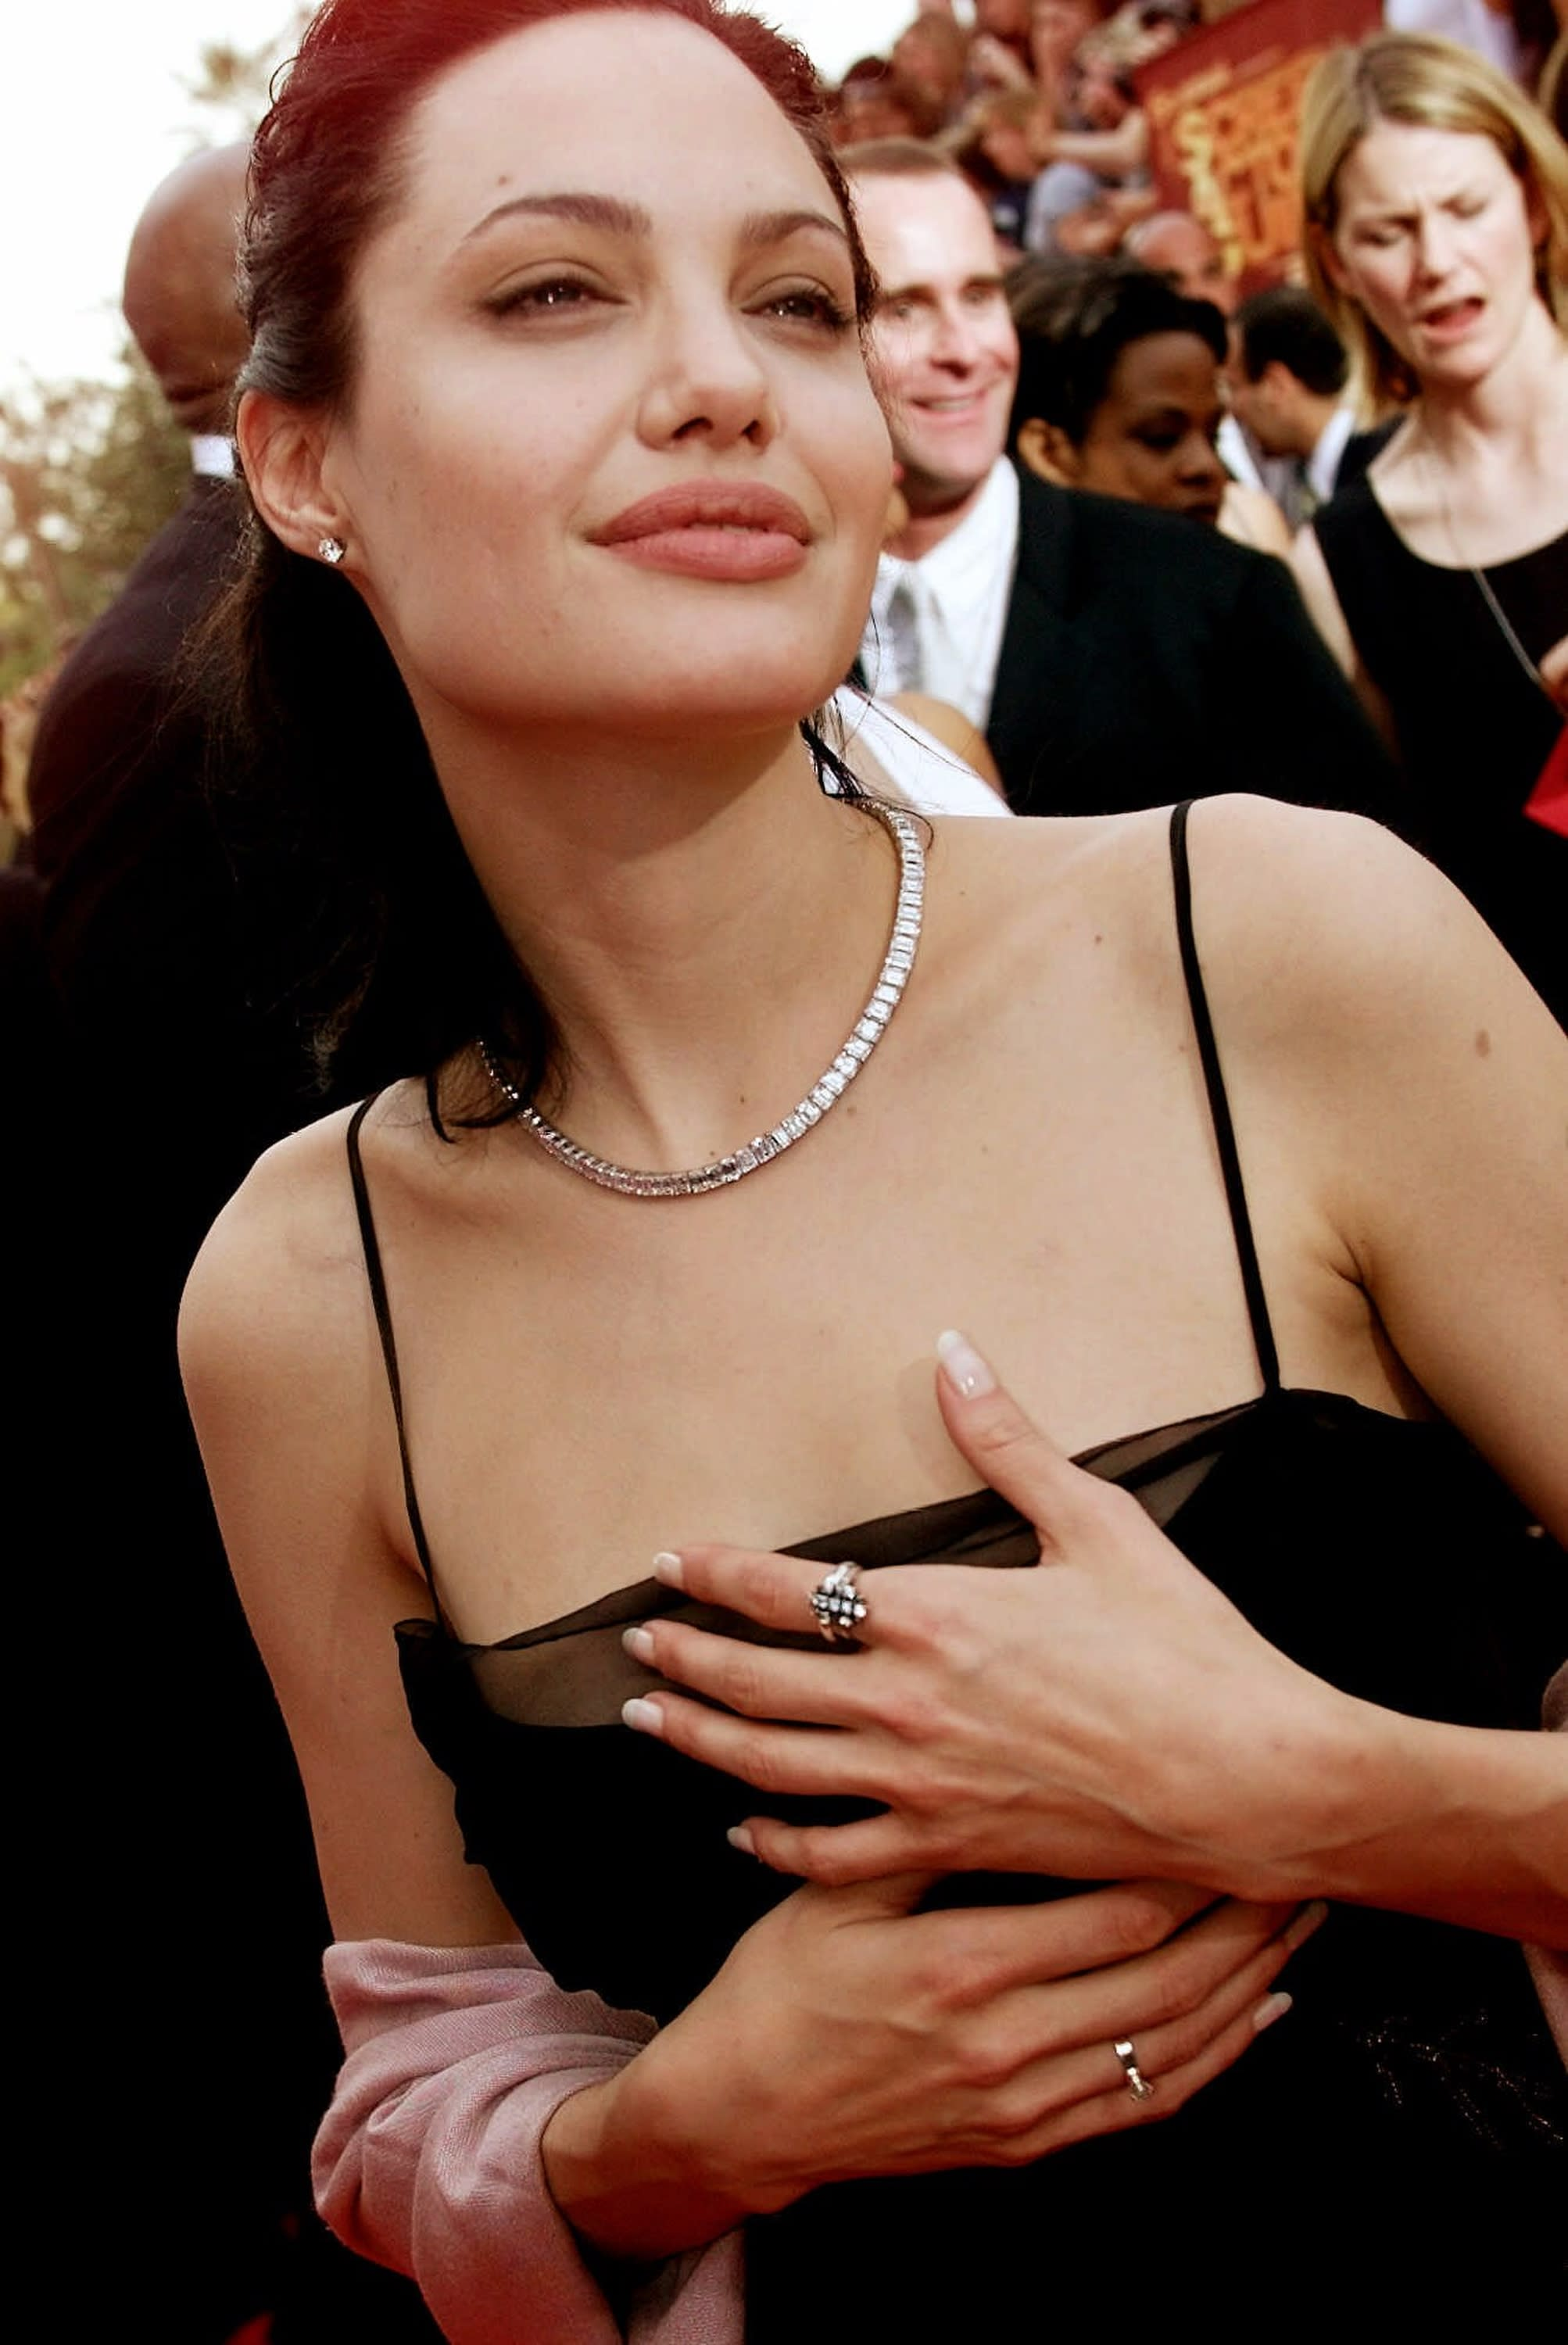 "FILE - In this March 12, 2000 file photo, Actress Angelina Jolie arrives at the 6h Annual Screen Actors Guild Awards in Los Angeles. Jolie won an award for Outstanding Performance for a Female Actor in a Supporting Role for ""Girl, Interrupted."" Less than two weeks after Angelina Jolie had a double mastectomy to avoid breast cancer, her aunt has died from the disease. Jolie's aunt Debbie Martin died at age 61 Sunday in a San Diego-area hospital, her husband Ron Martin tells The Associated Press. Debbie Martin was the younger sister of Jolie's mother Marcheline Bertrand, whose own death from cancer in 2007 inspired the surgery that Jolie described in a May 14 New York Times op-ed. (AP Photo/Damian Dovarganes, File)"